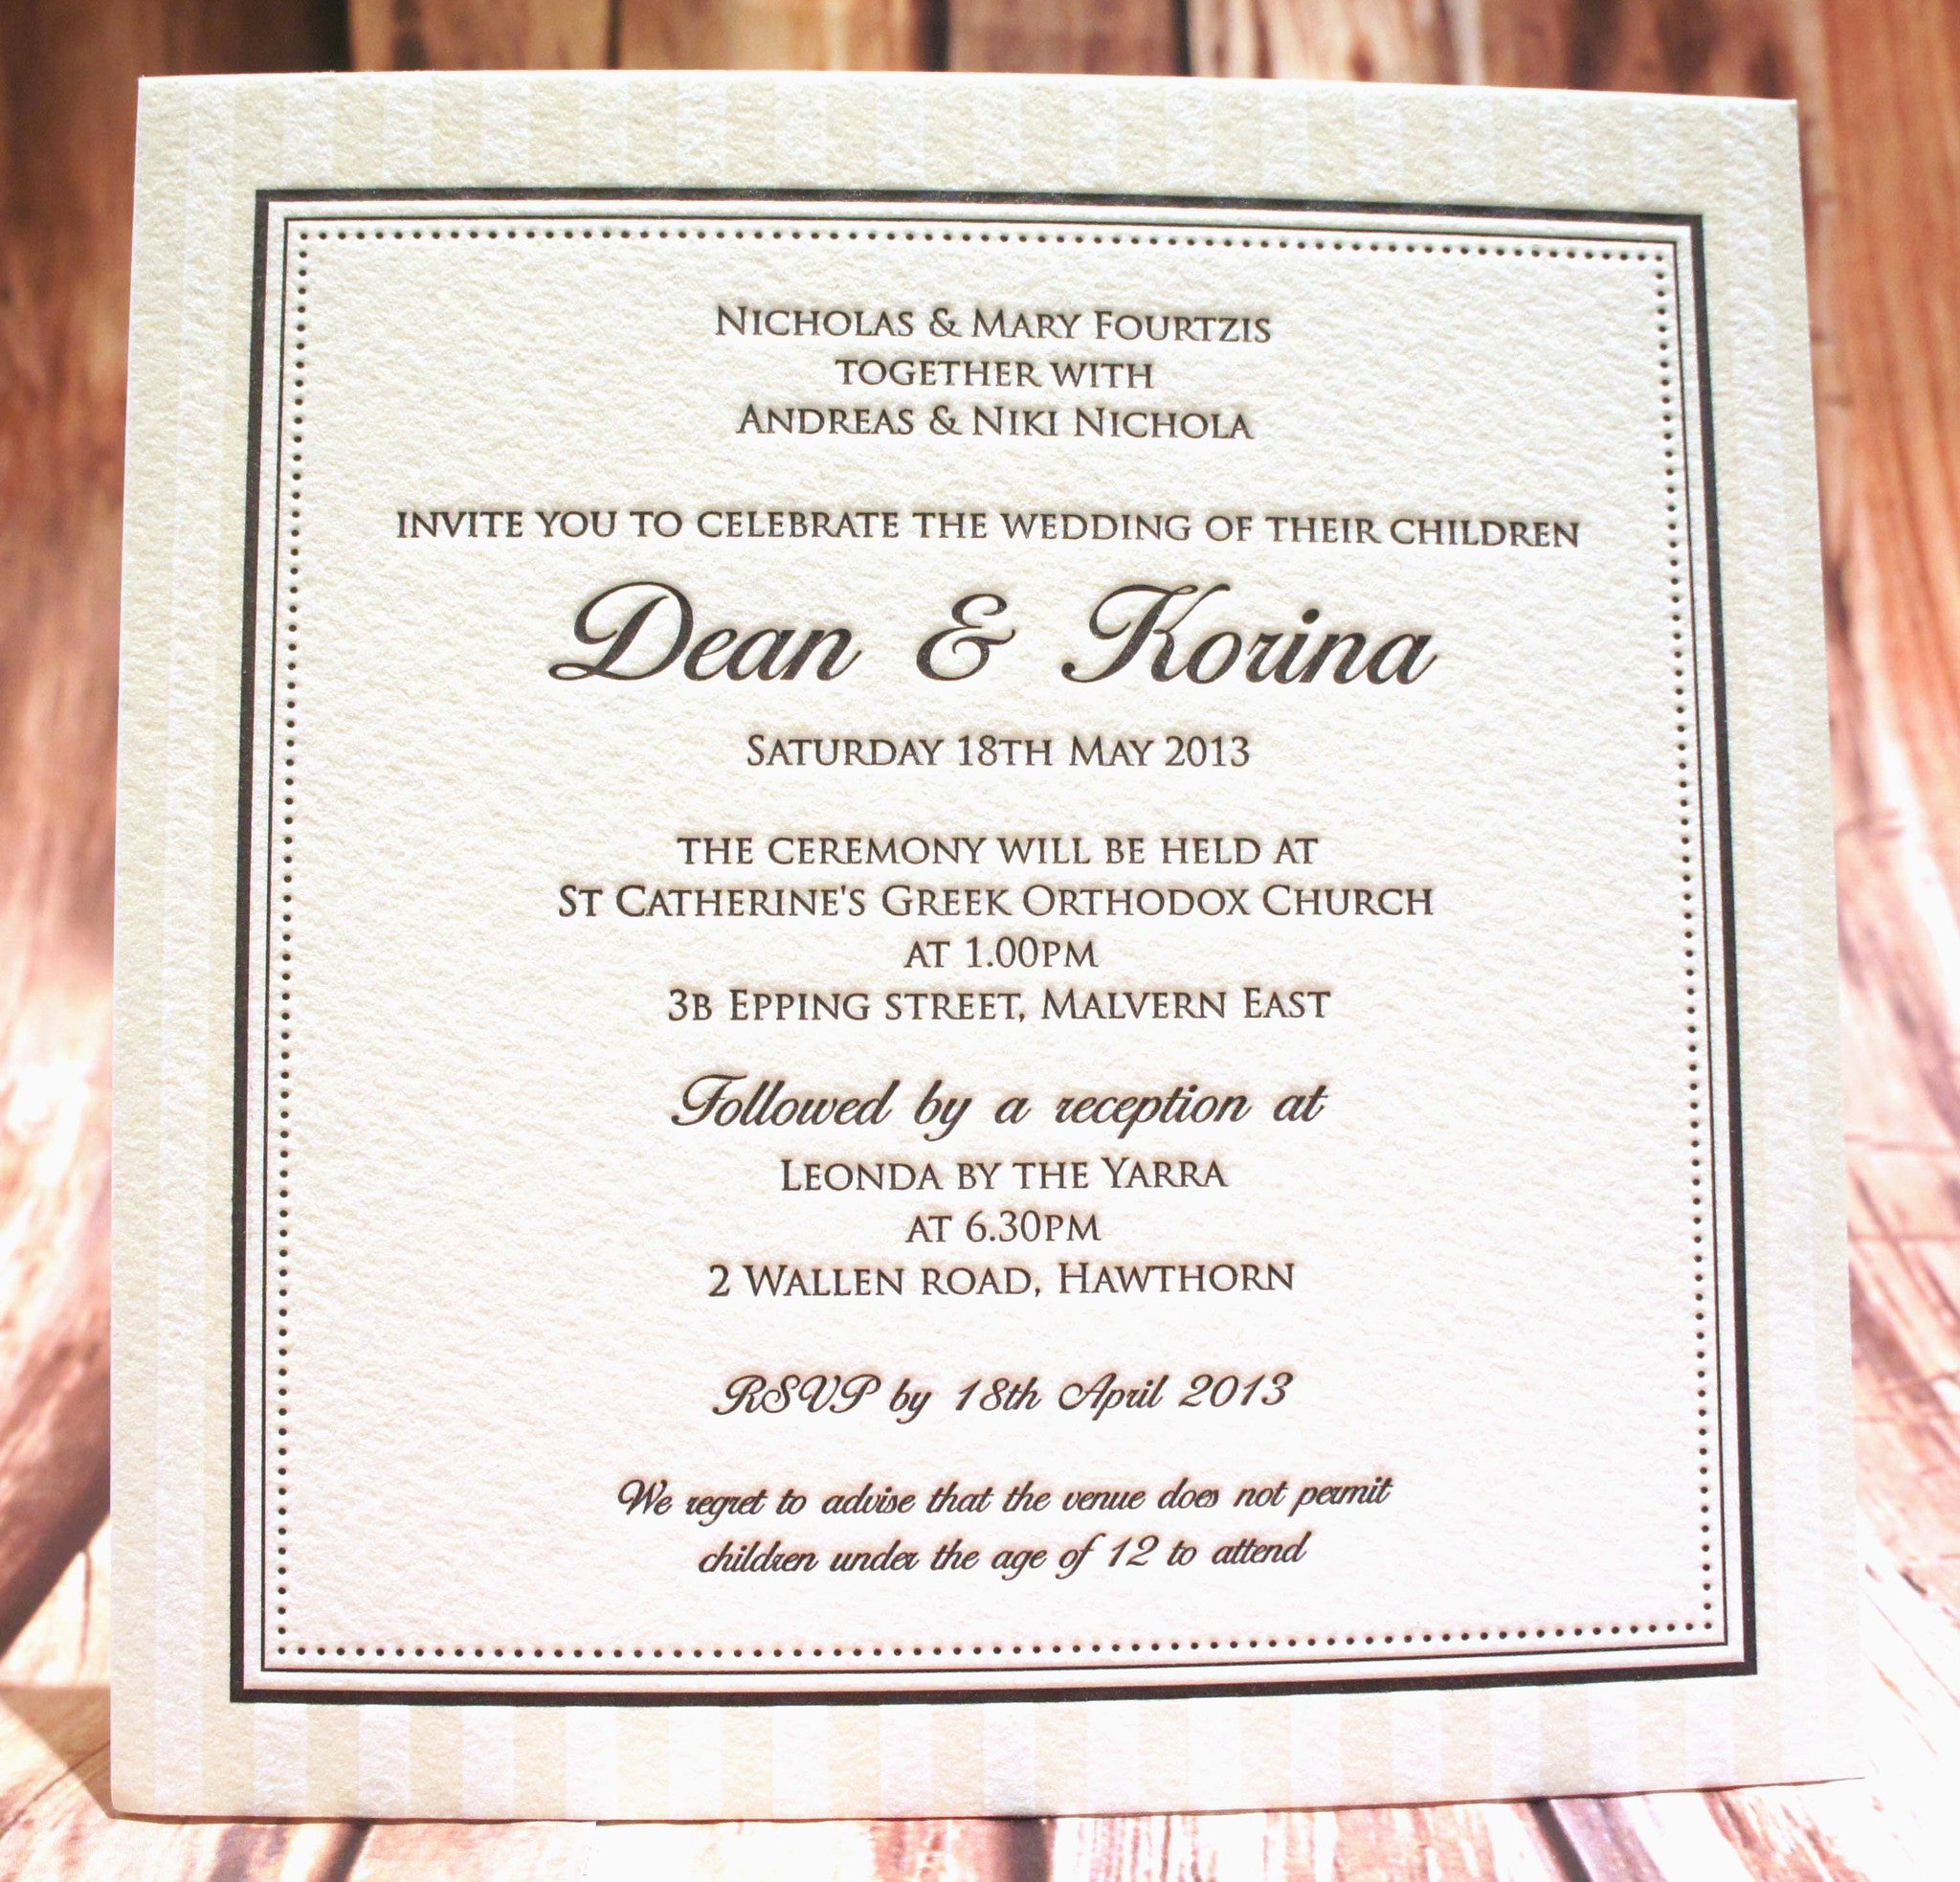 Pressed with Love - Wedding Invitation